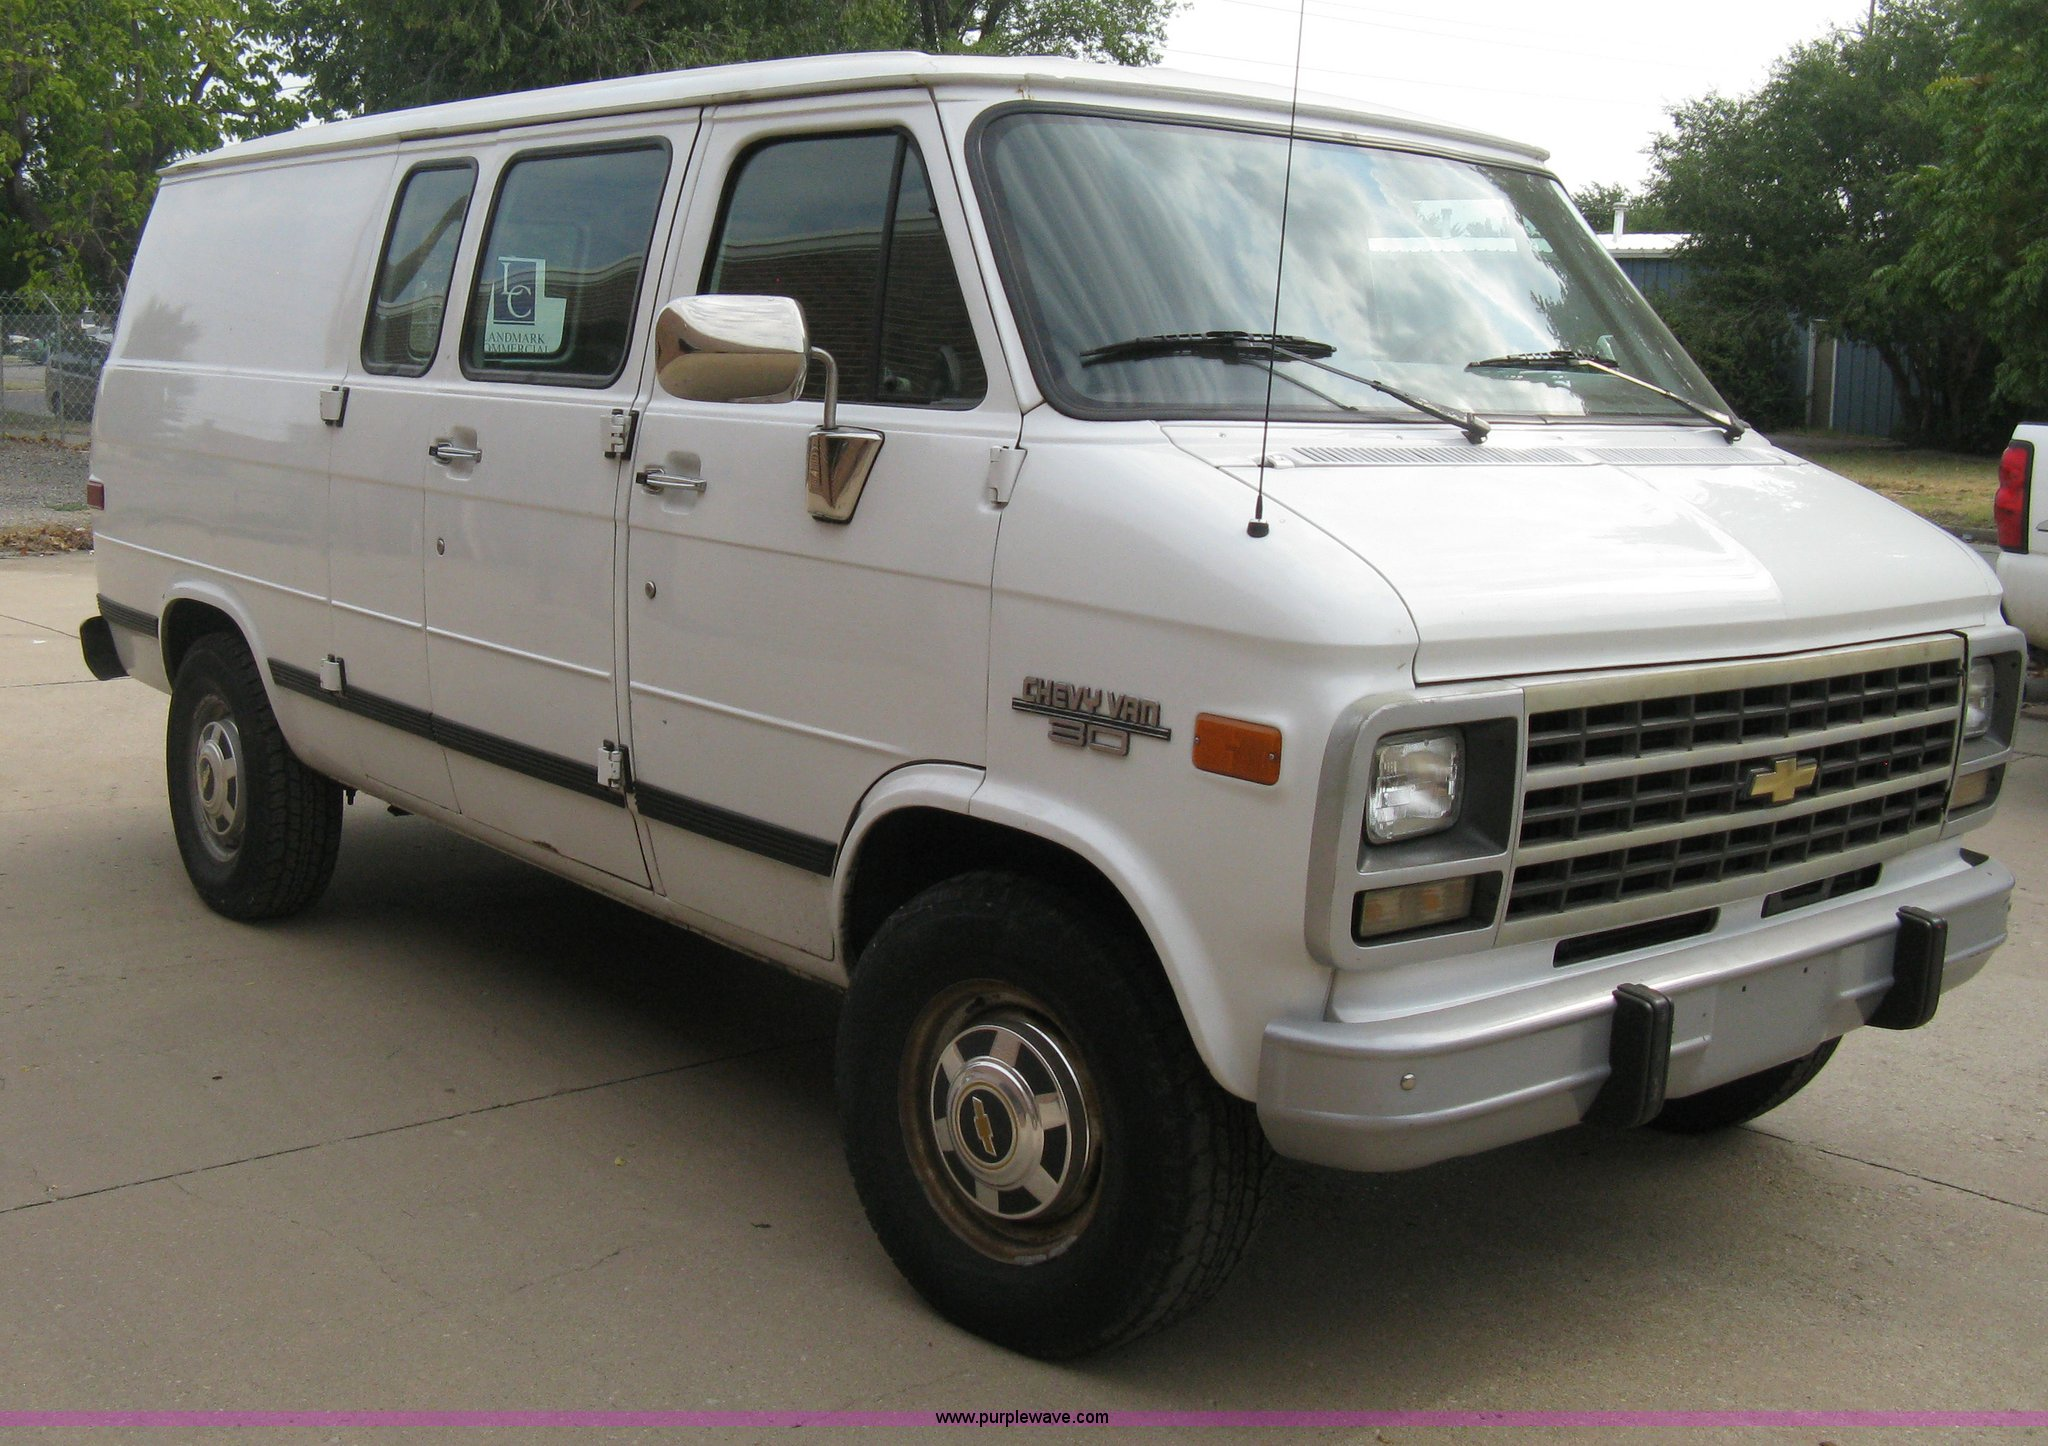 cadillac express cargo item pickup chevrolet van auctions limousine truck silverado west auction